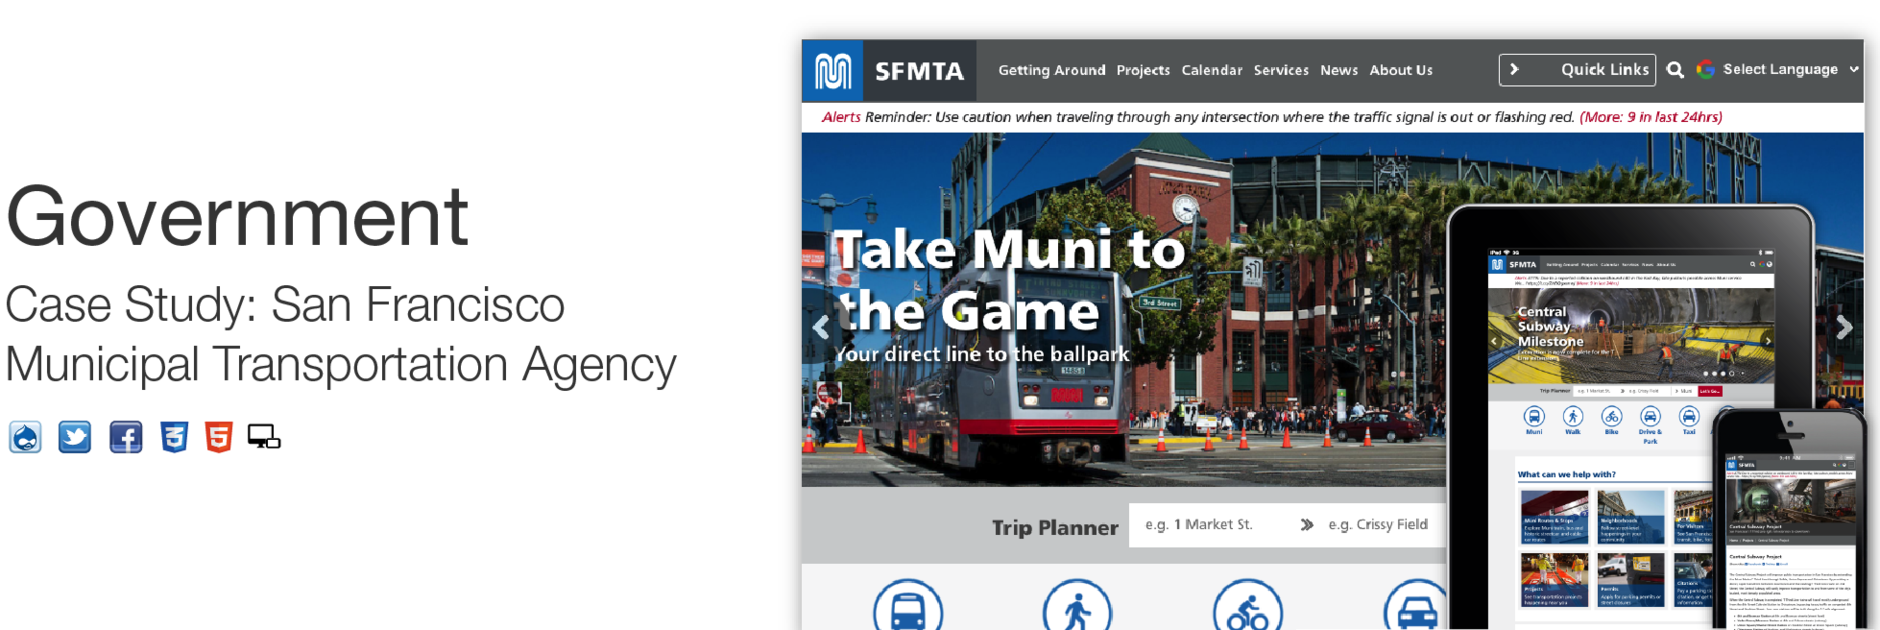 San Francisco Municipal Transportation Agency (SFMTA)